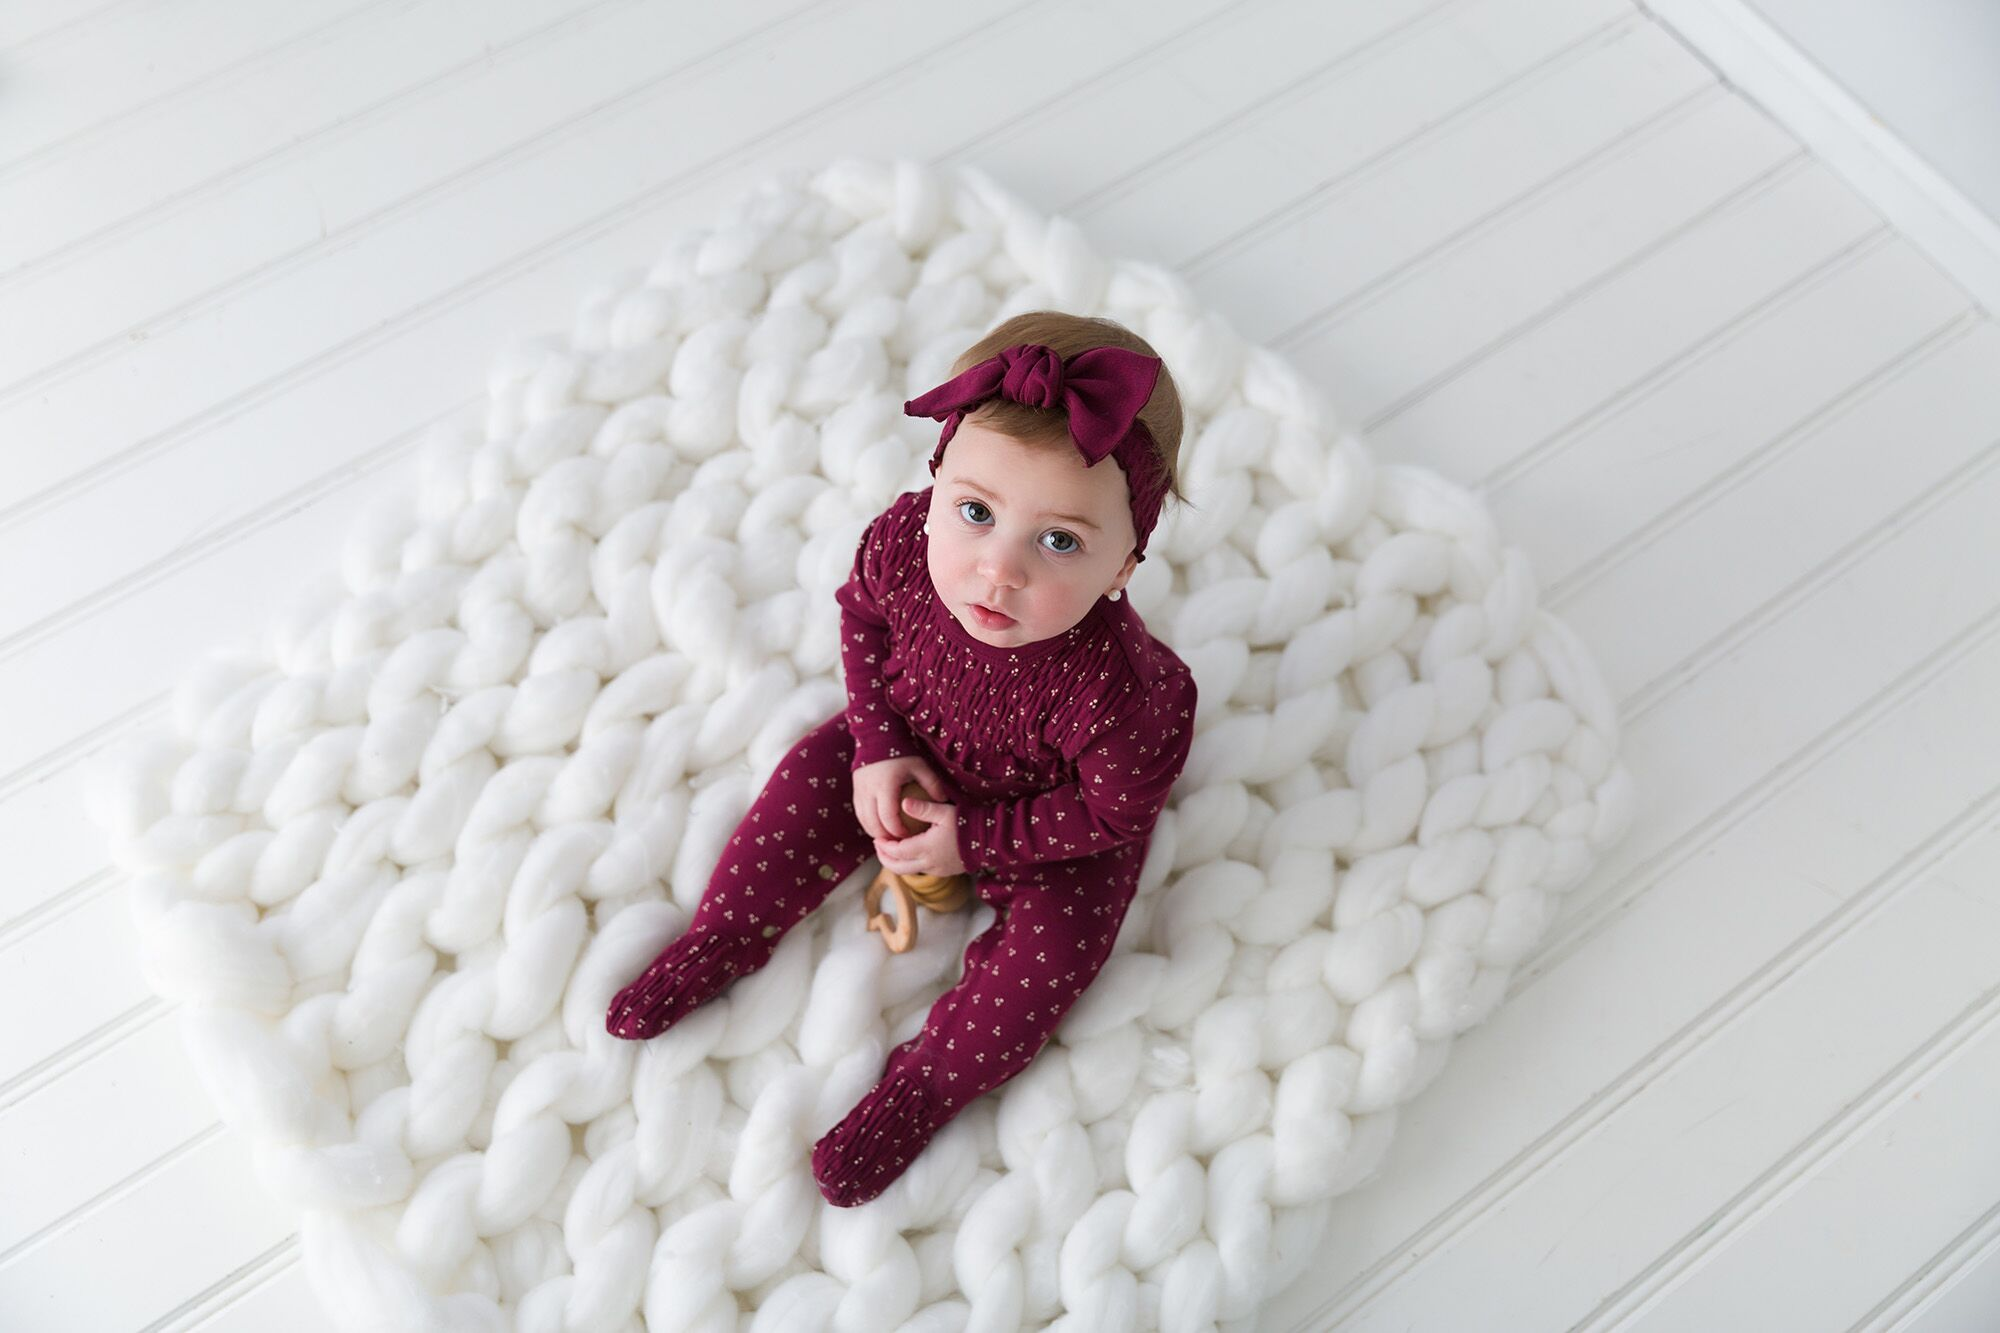 The Wool Room Baby Clearance